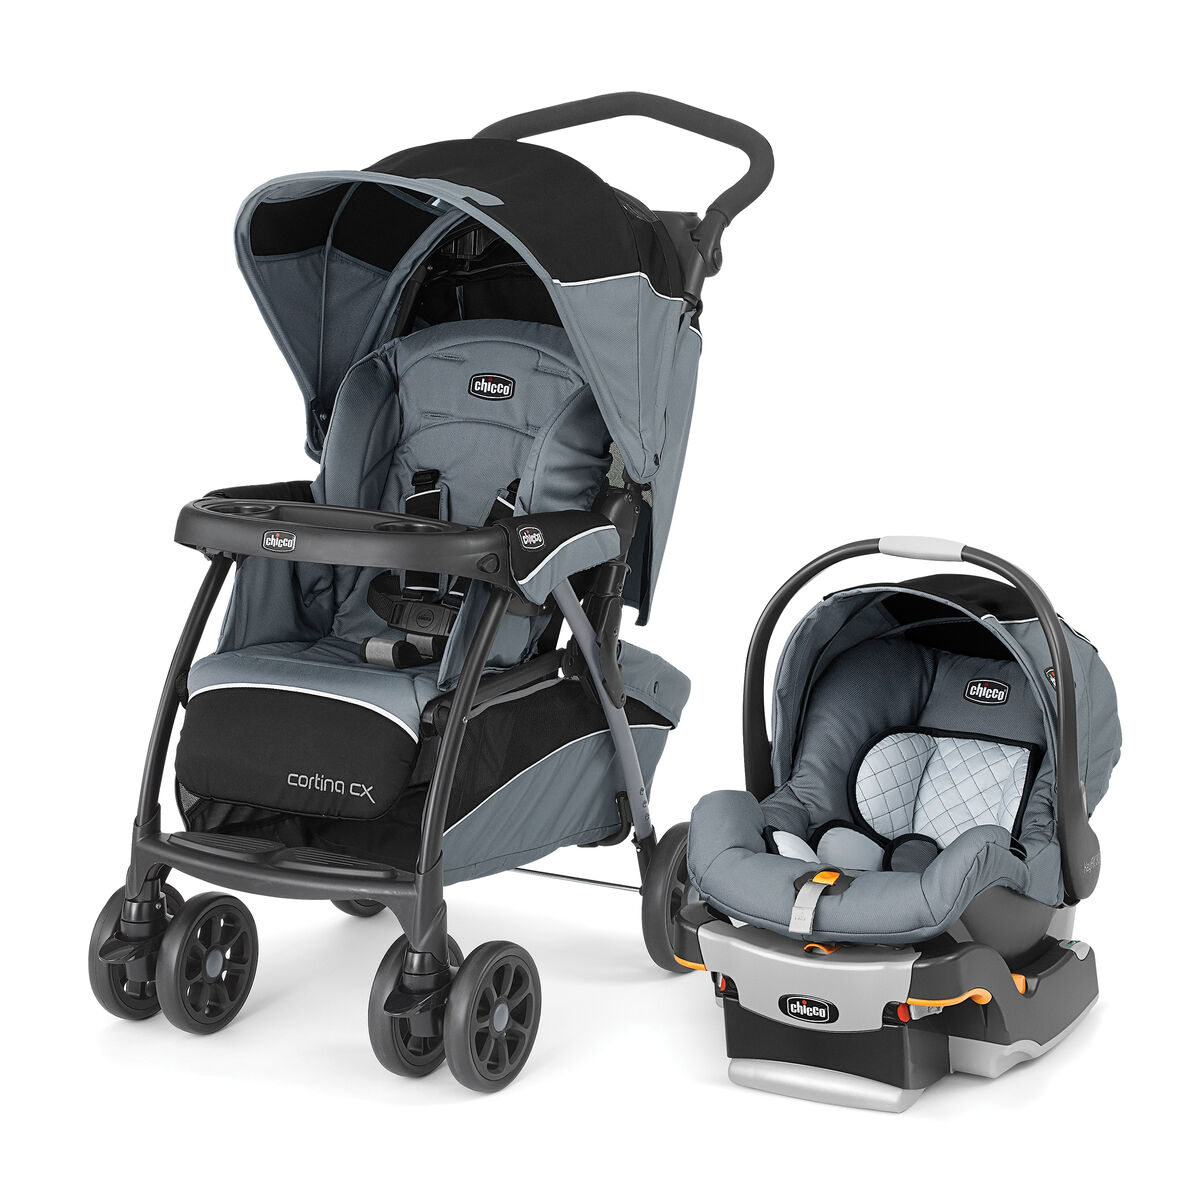 The Best Baby Travel System